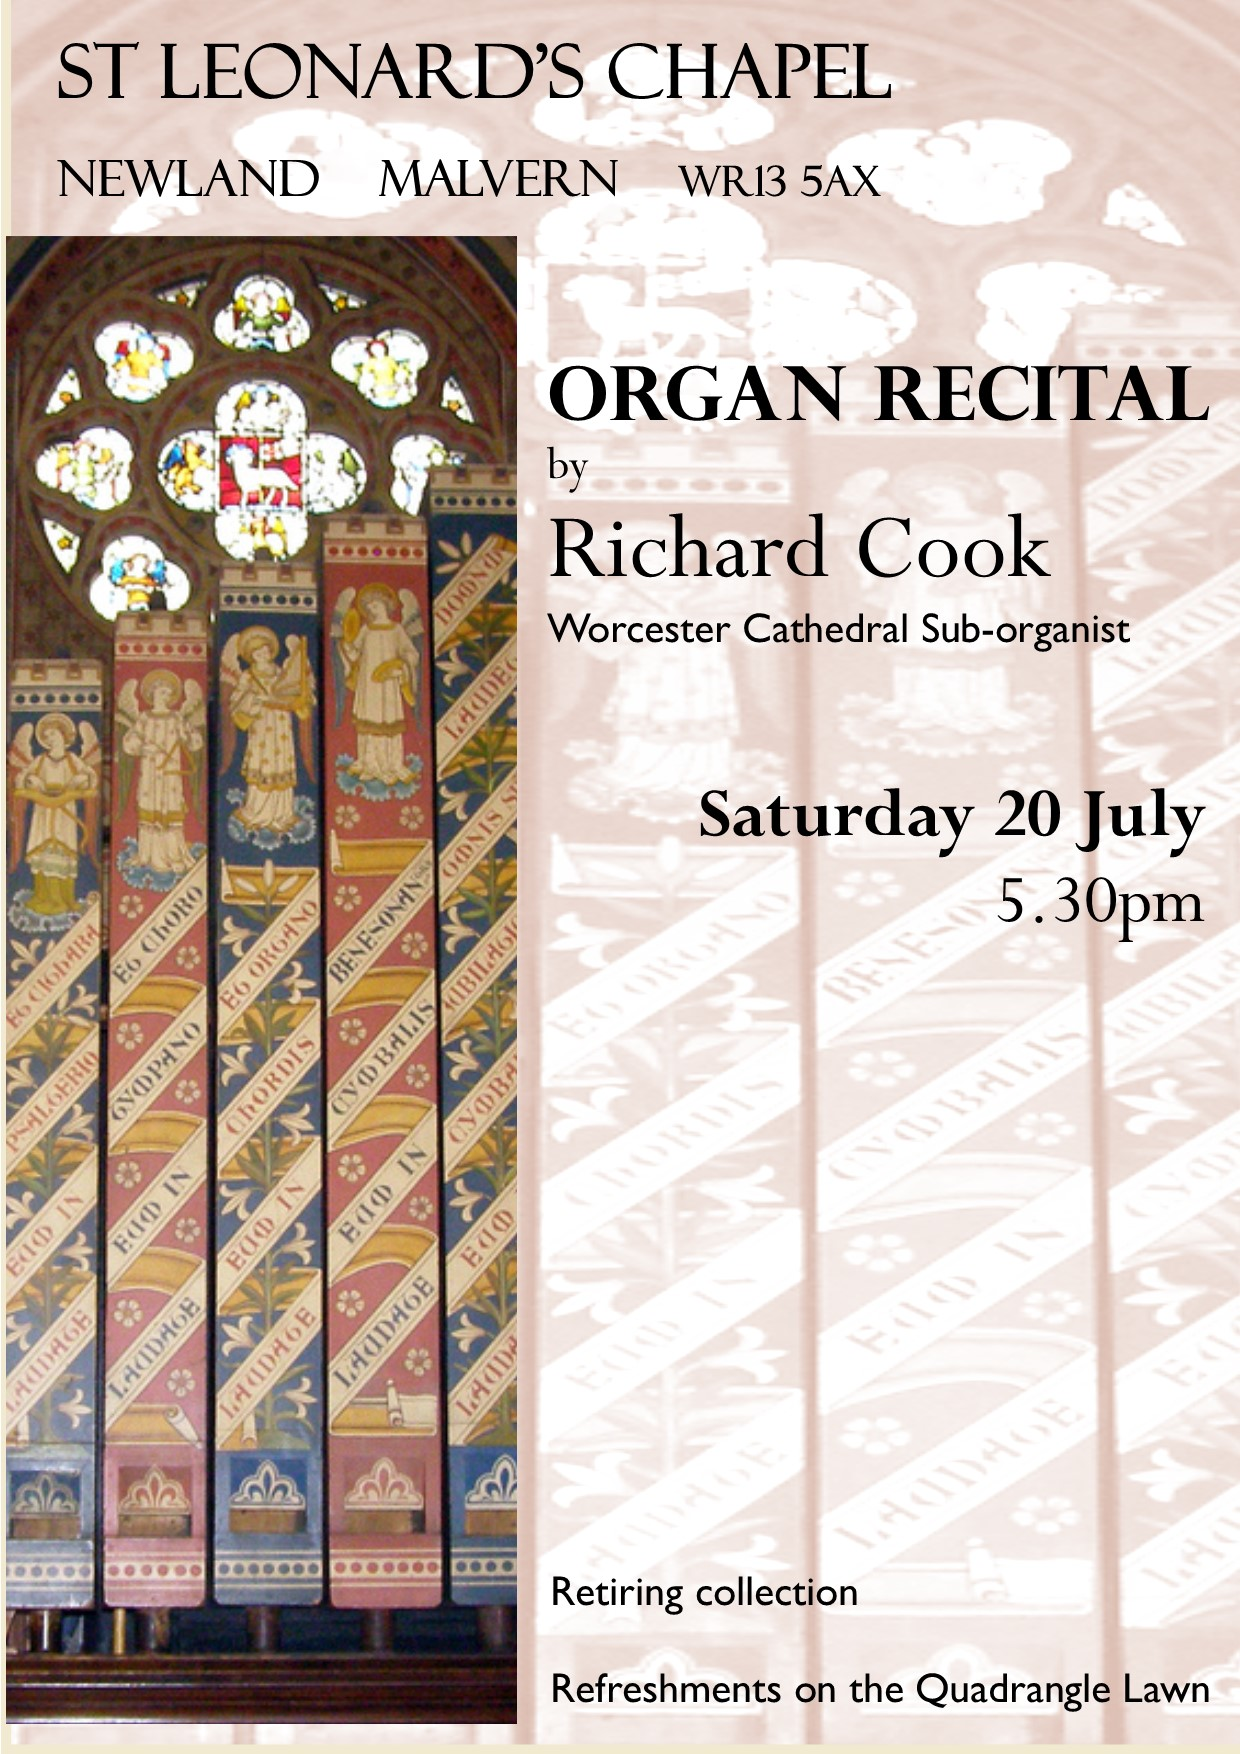 Organ Recital by Richard Cook